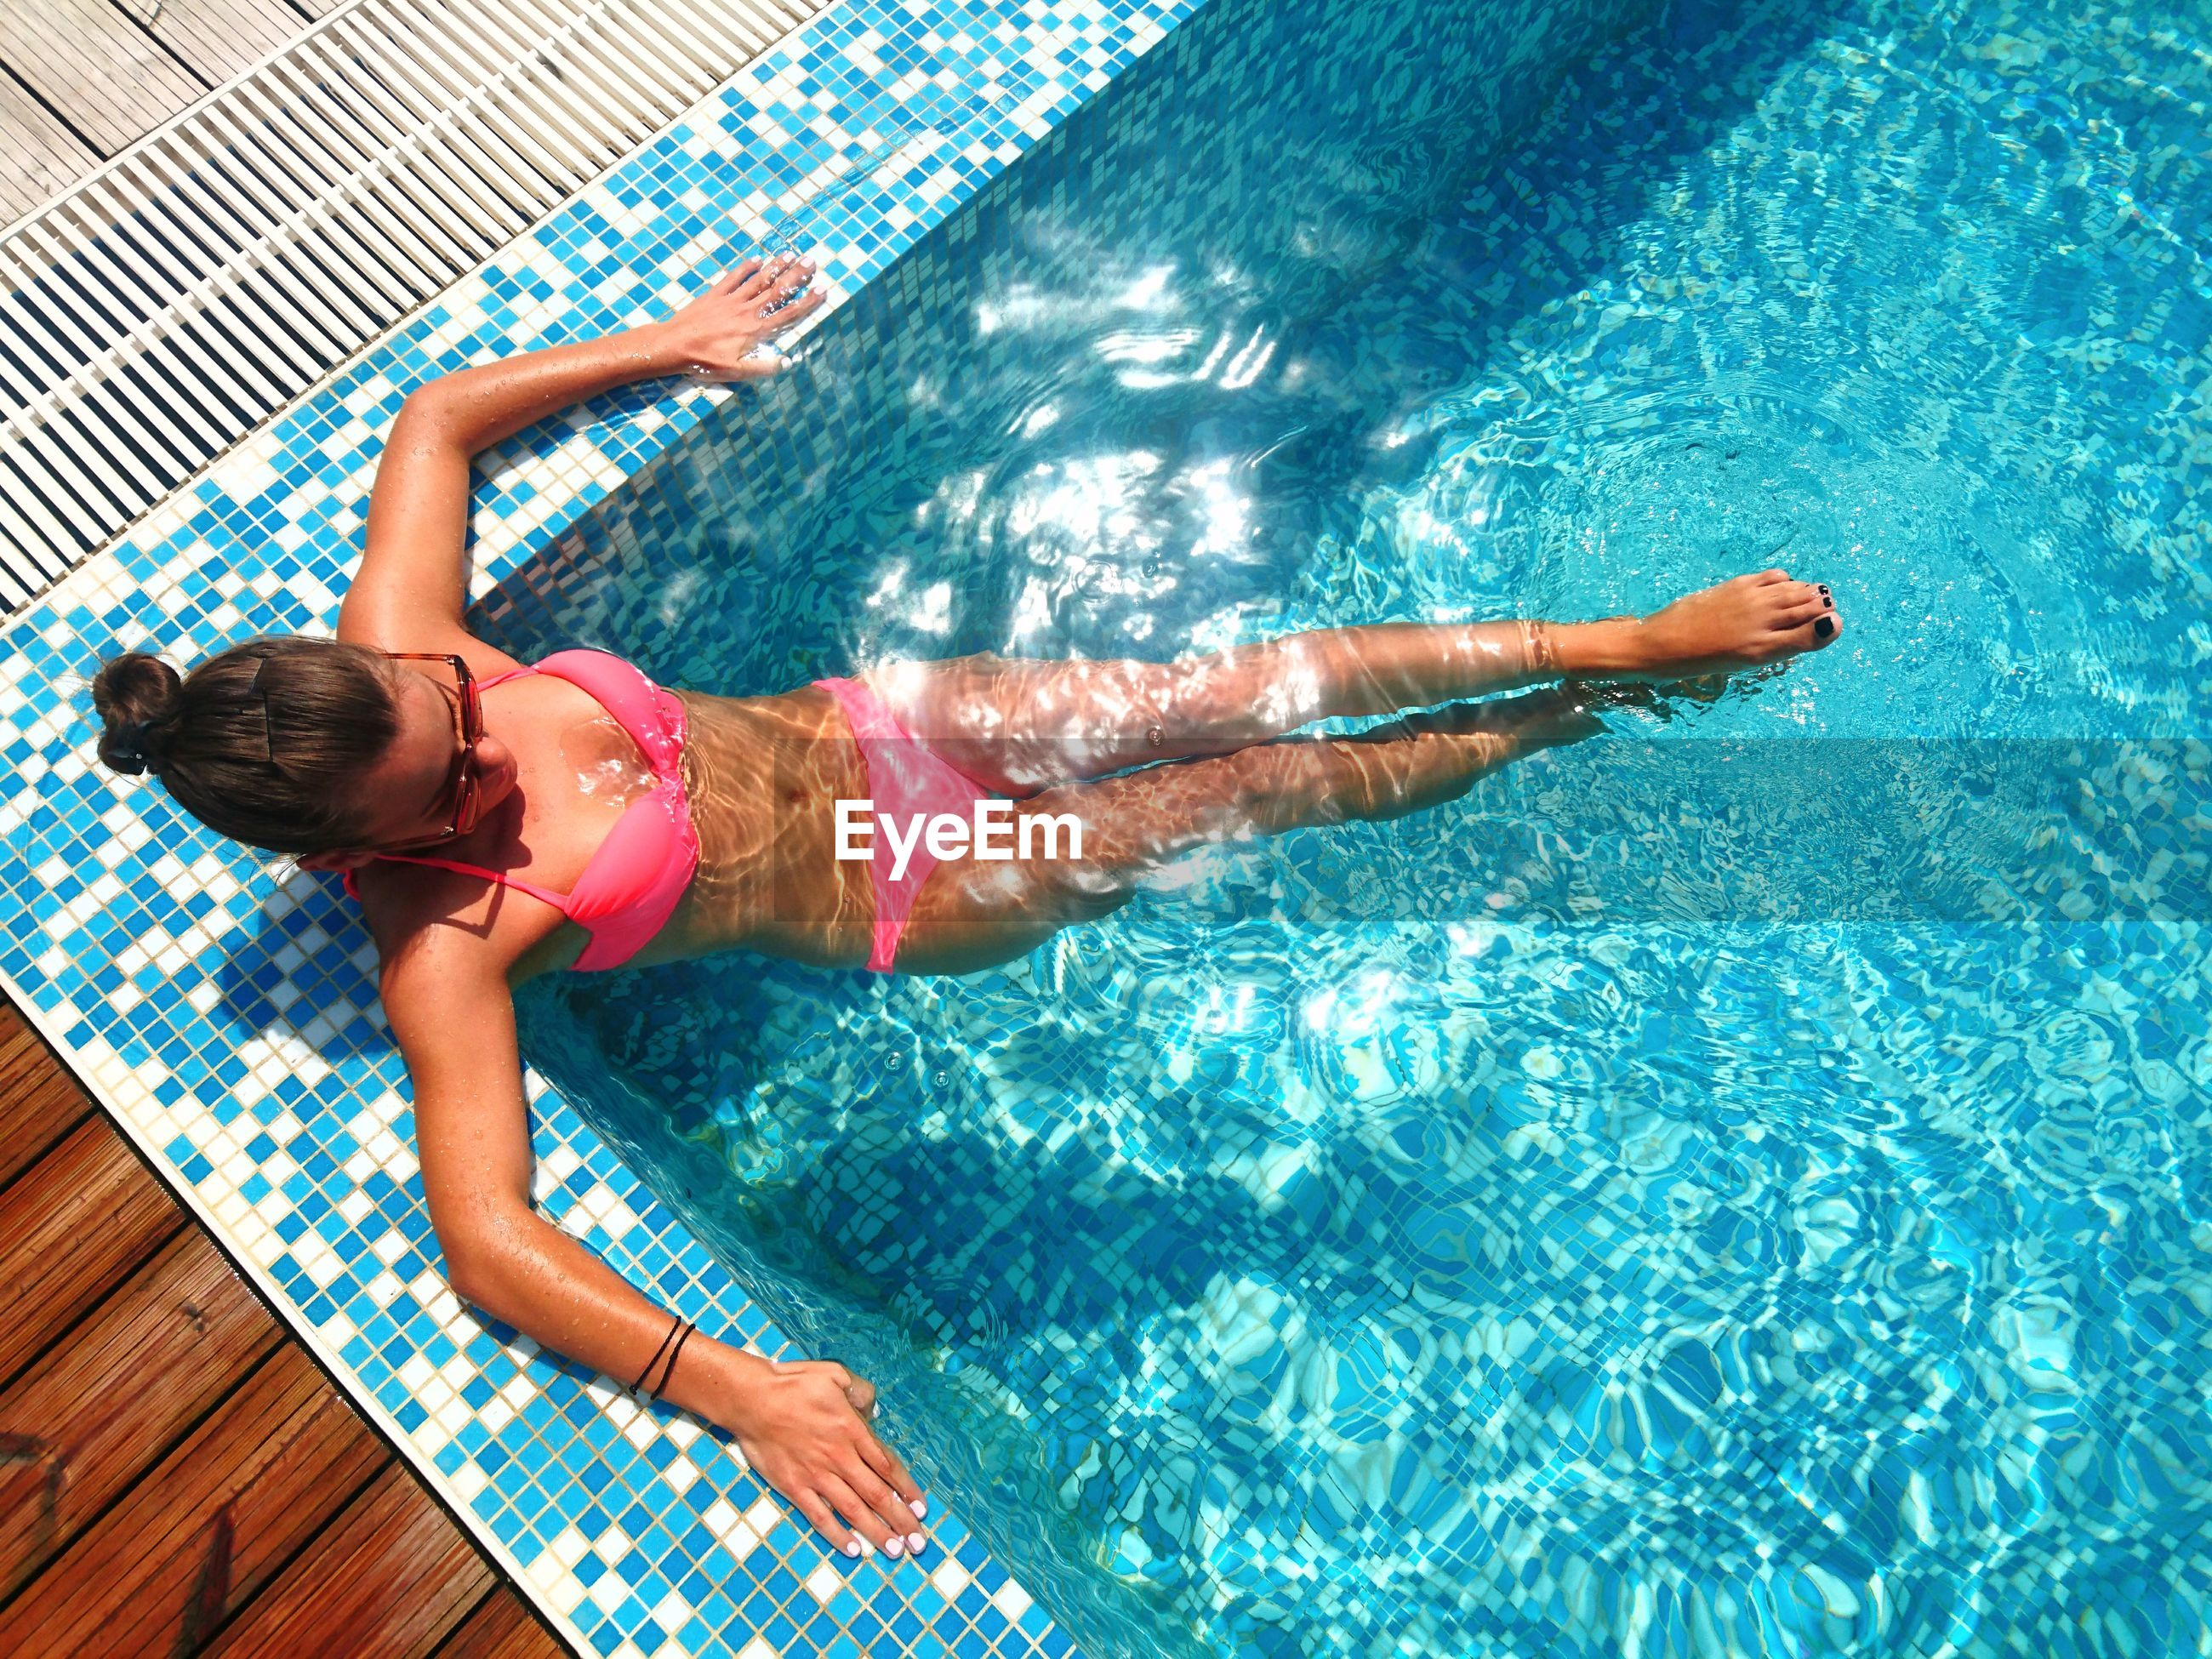 High angle view of young woman wearing pink bikini in swimming pool